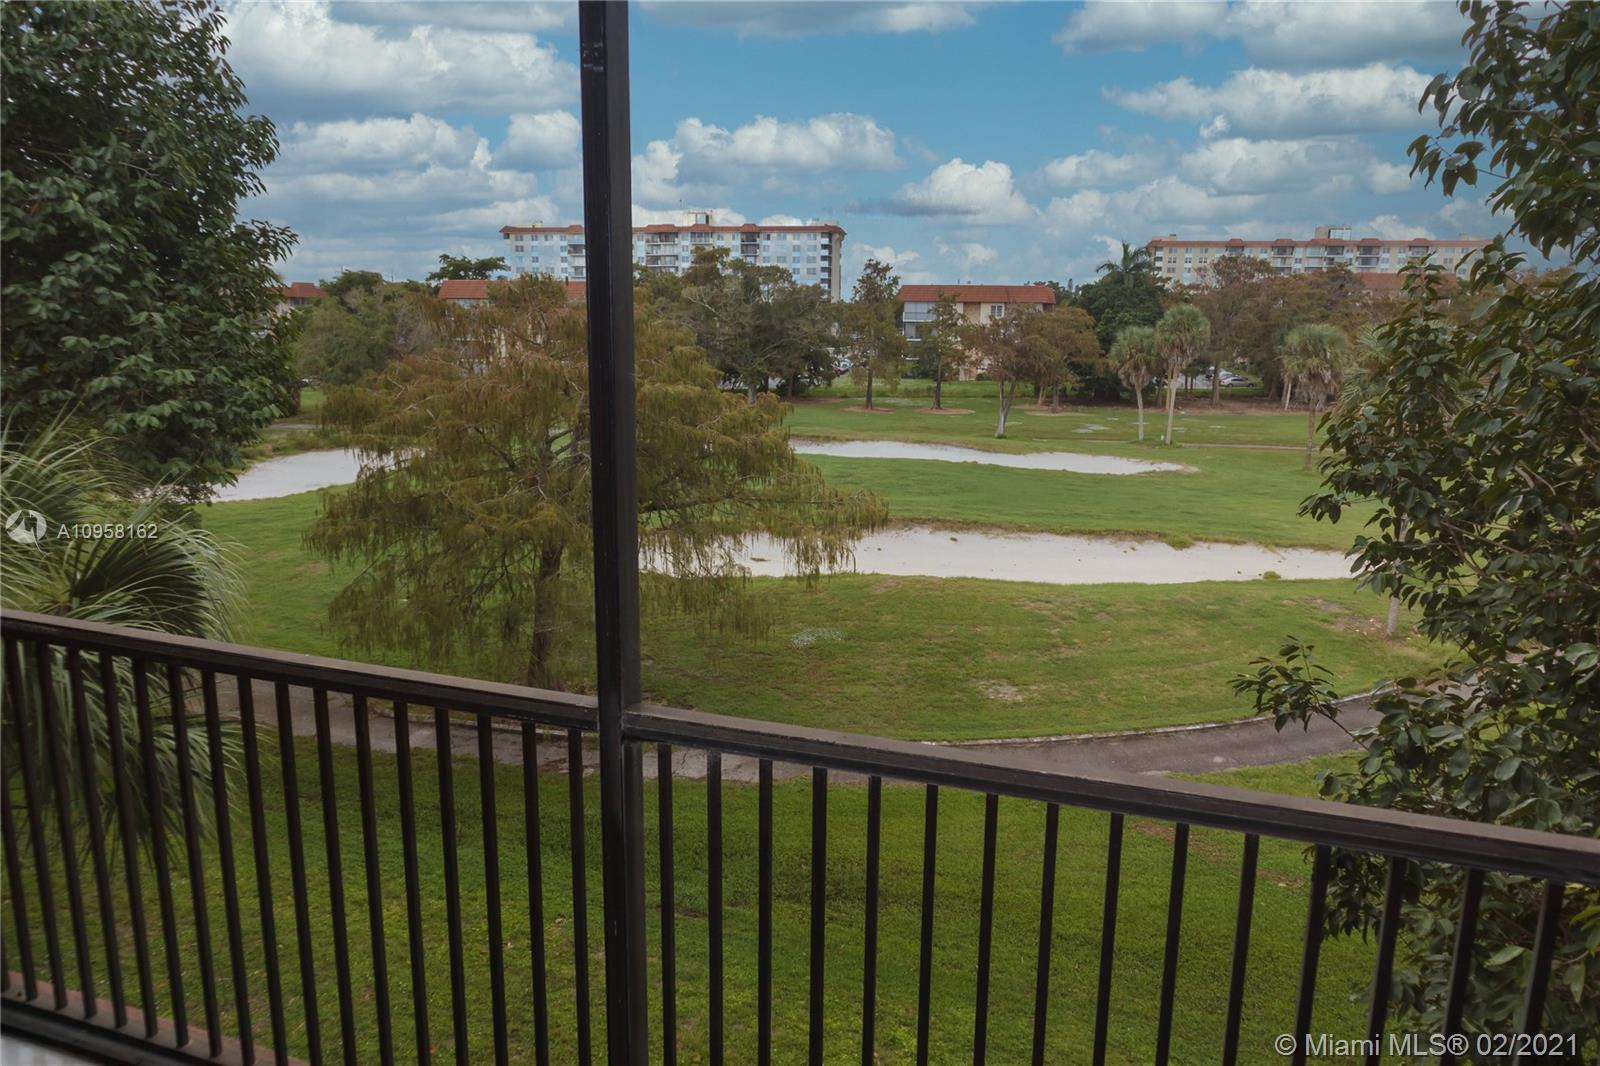 Enjoy resort-style living in this amazing golf view unit. 2 bedrooms & 2 baths unit in the desirable and guarded community of Inverwood. The unit features recently painted, tiled on living areas and laminated floor on bedrooms, easy to maintain, located right off the elevator, enjoy the gorgeous view of the golf course from your balcony. This unit is move-in ready and functional, washer/dryer inside the unit. It is the perfect starter home! Complex is minutes away from the Turnpike, and 15 minutes West of I 95 and west of Sawgrass Expressway. It is close to major grocery chains, gyms and major roads rock Island & Commercial. Amenities on-site include a heated pool, tennis courts, a clubhouse and gym, billiard room and extra shared storage room, directly on Inverrary Golf and Country Club.